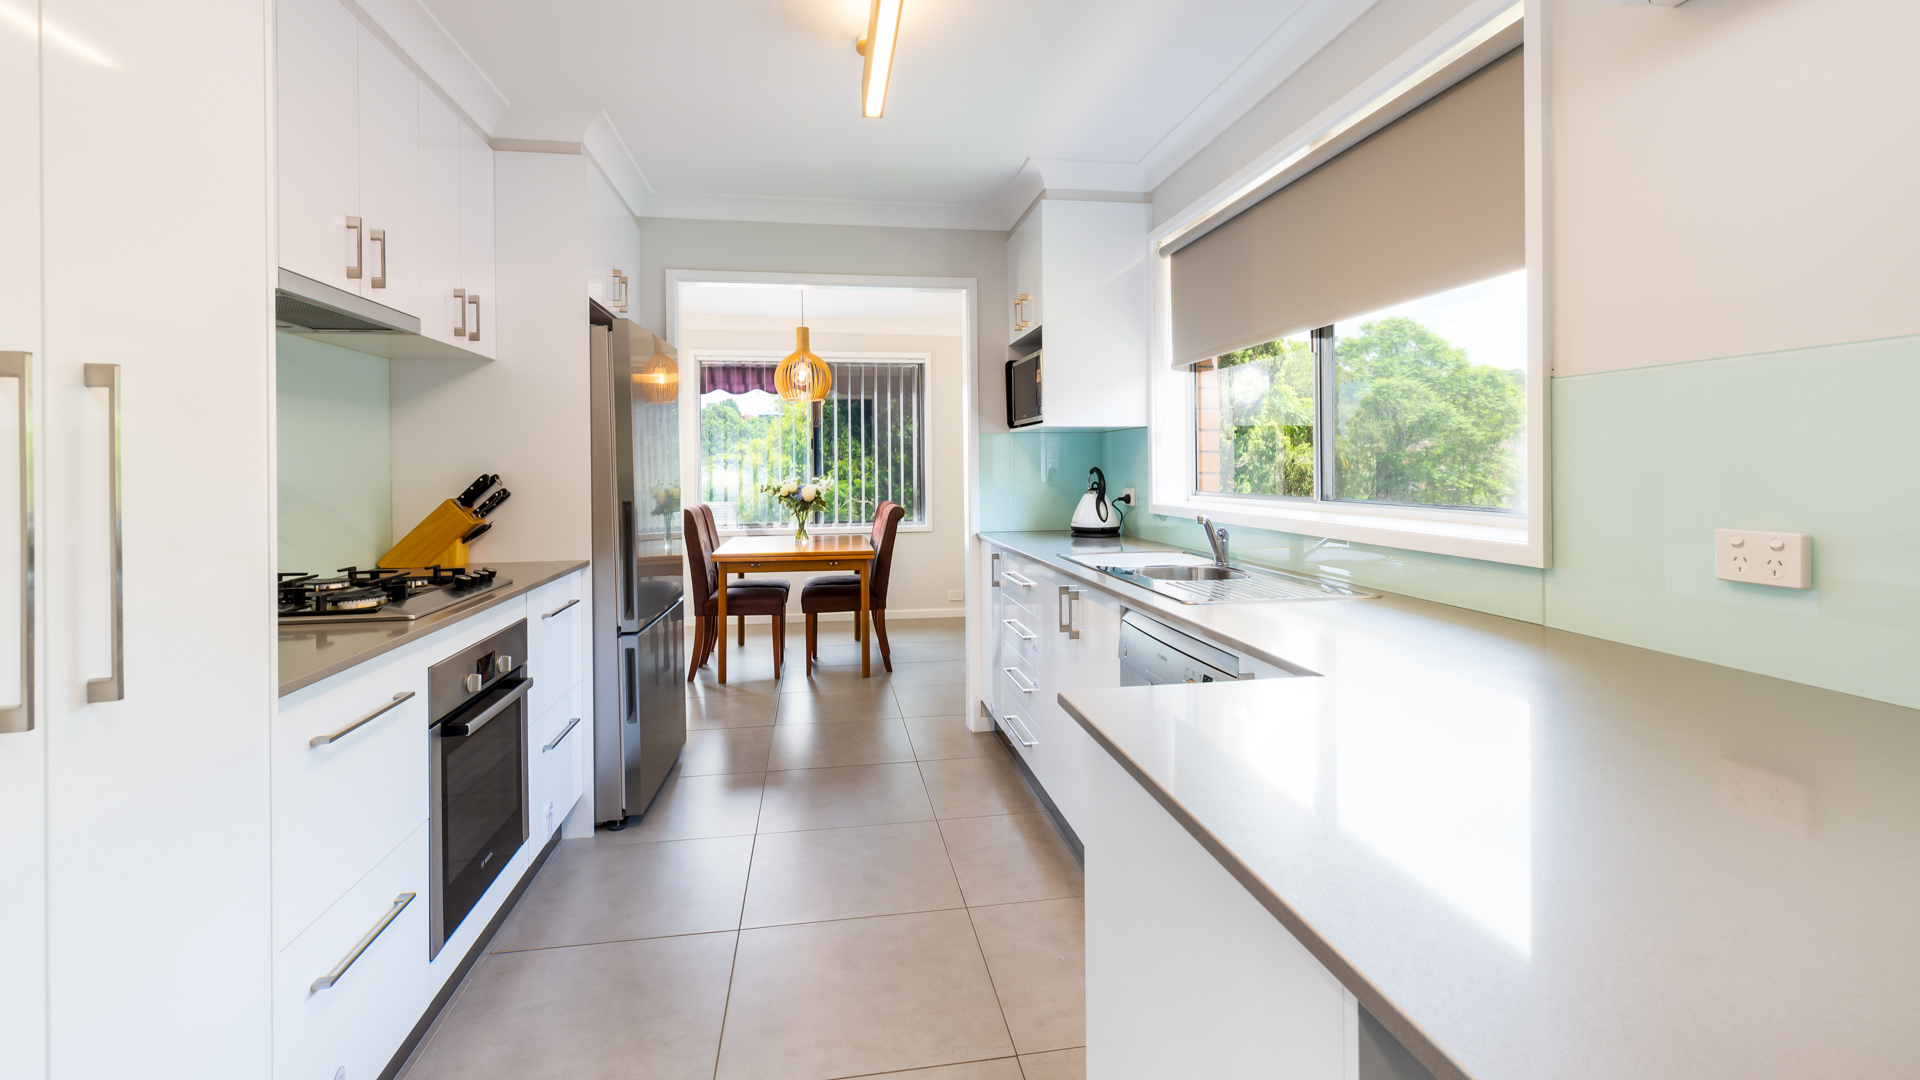 2 Woden Cl   Cardiff (14 of 24)